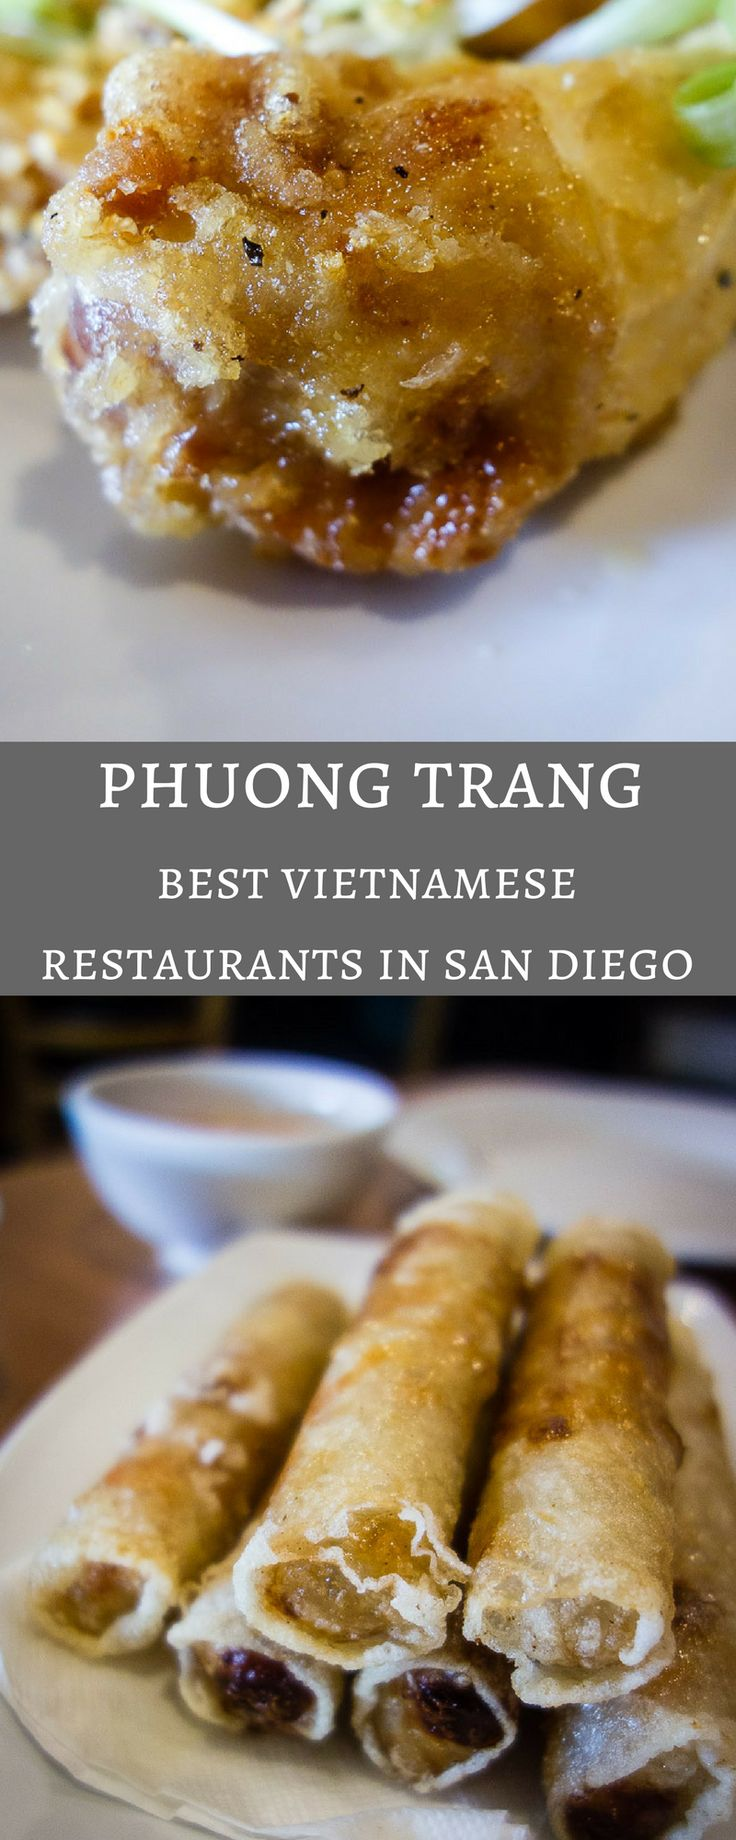 Phuong Trang Is One Of The Best Vietnamese Restaurants In San Diego Serving Up Delicious